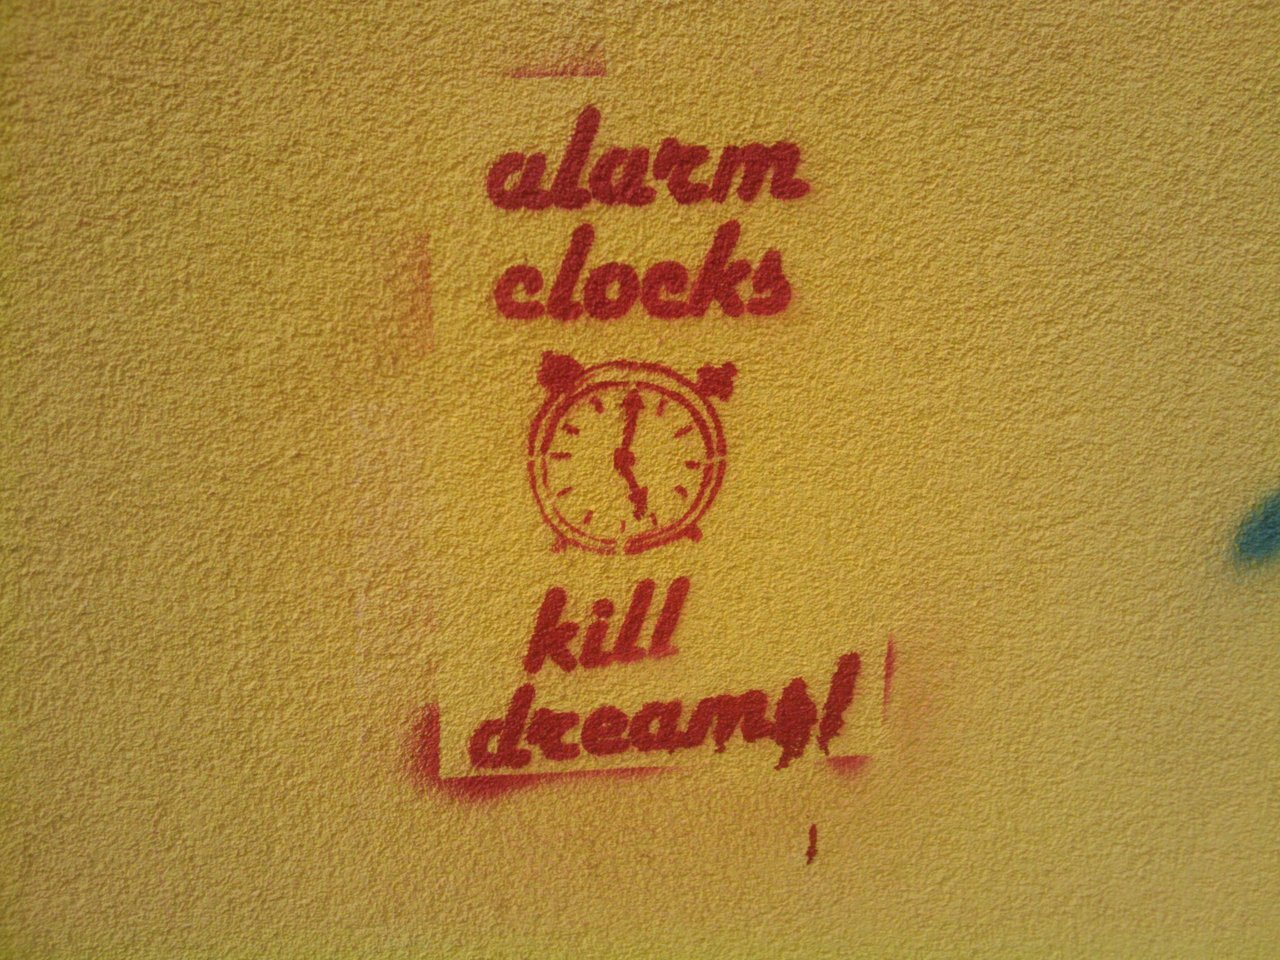 alarm_clocks_kill_dreams.jpg